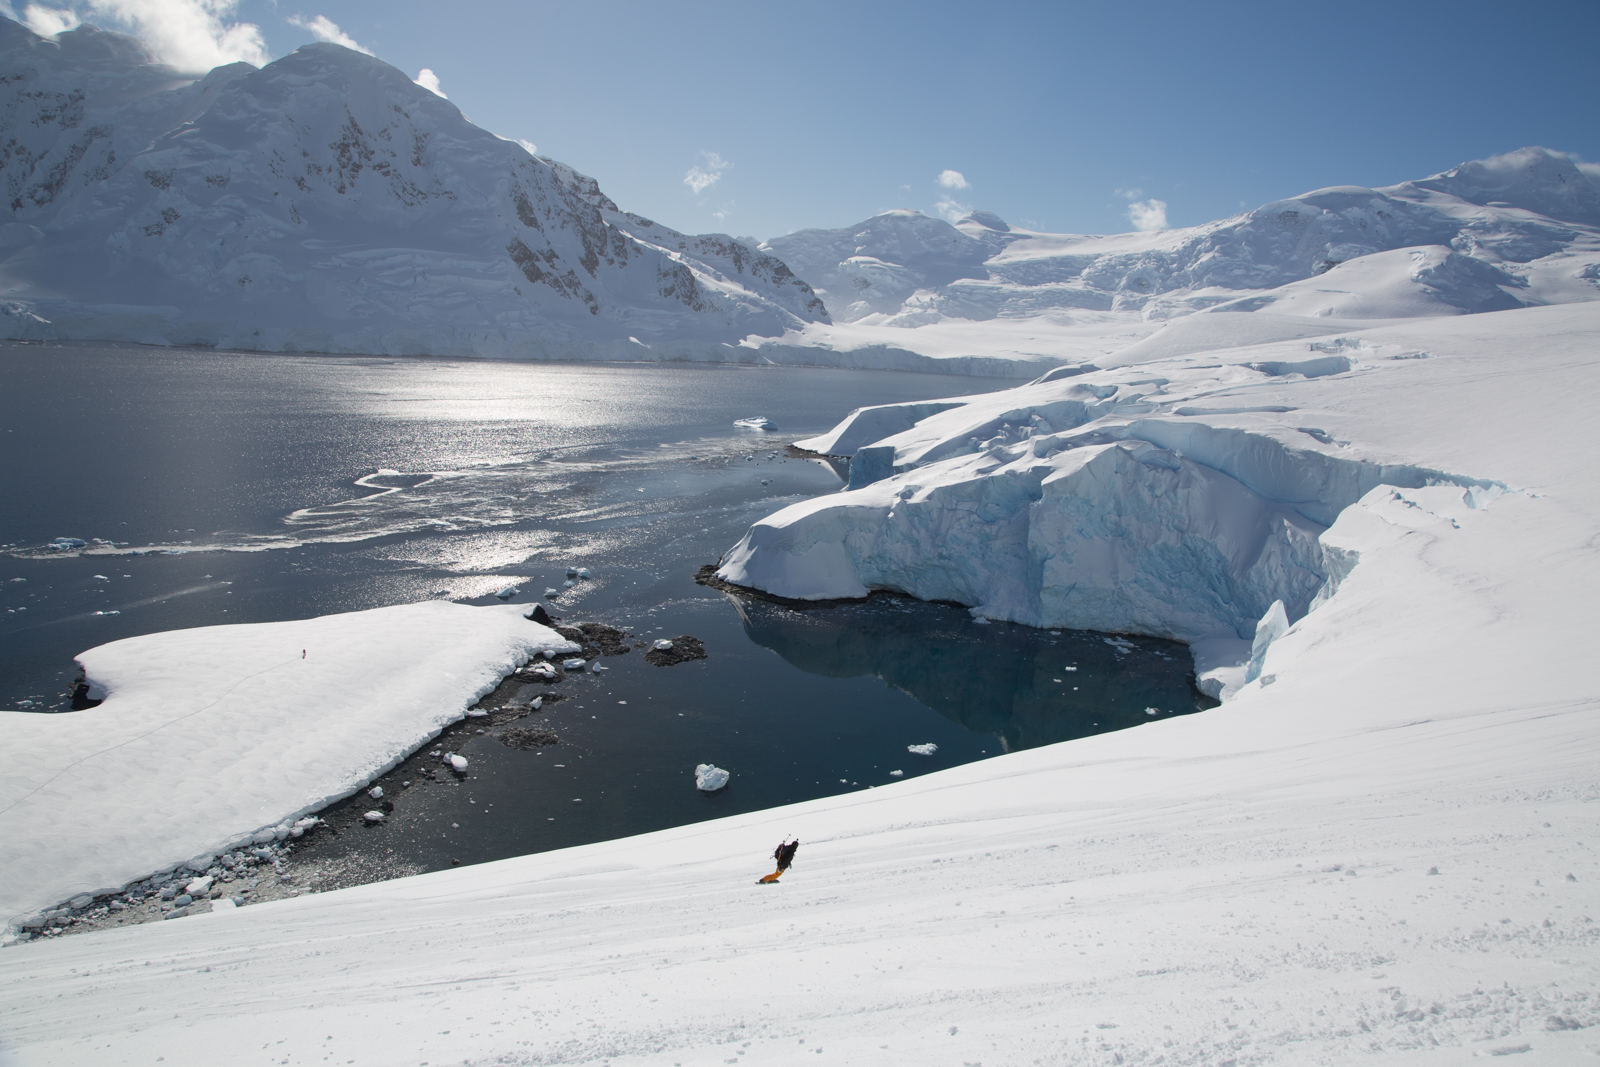 Antarctic Peninsula Adventure Cruise 2014 - Ice Axe Expeditions